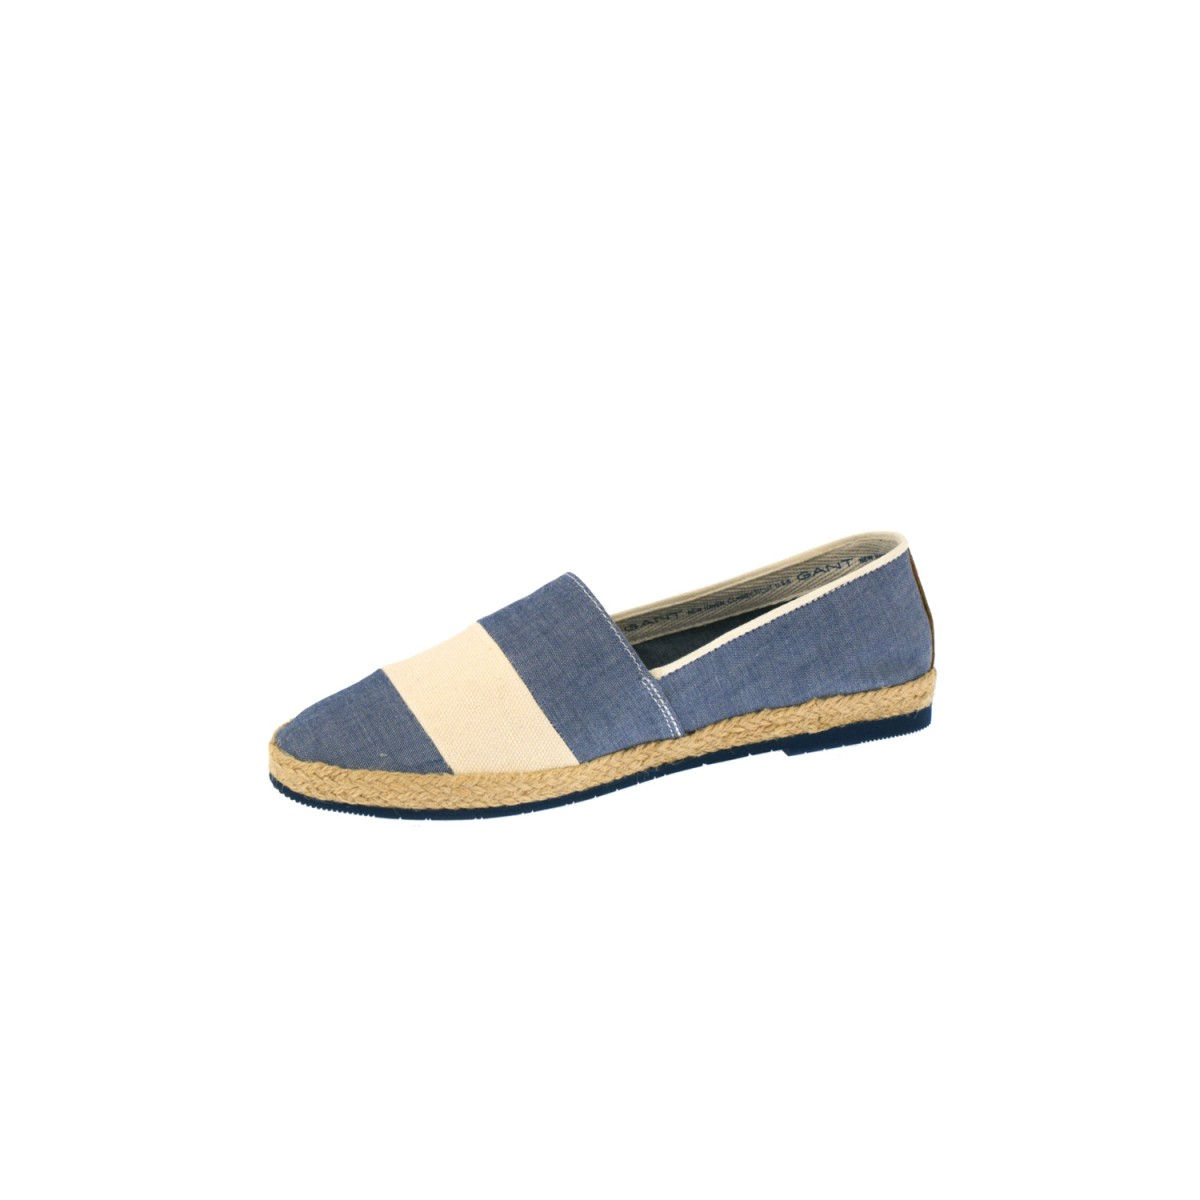 Gant Gina Block Cream/Vintage Blue-35